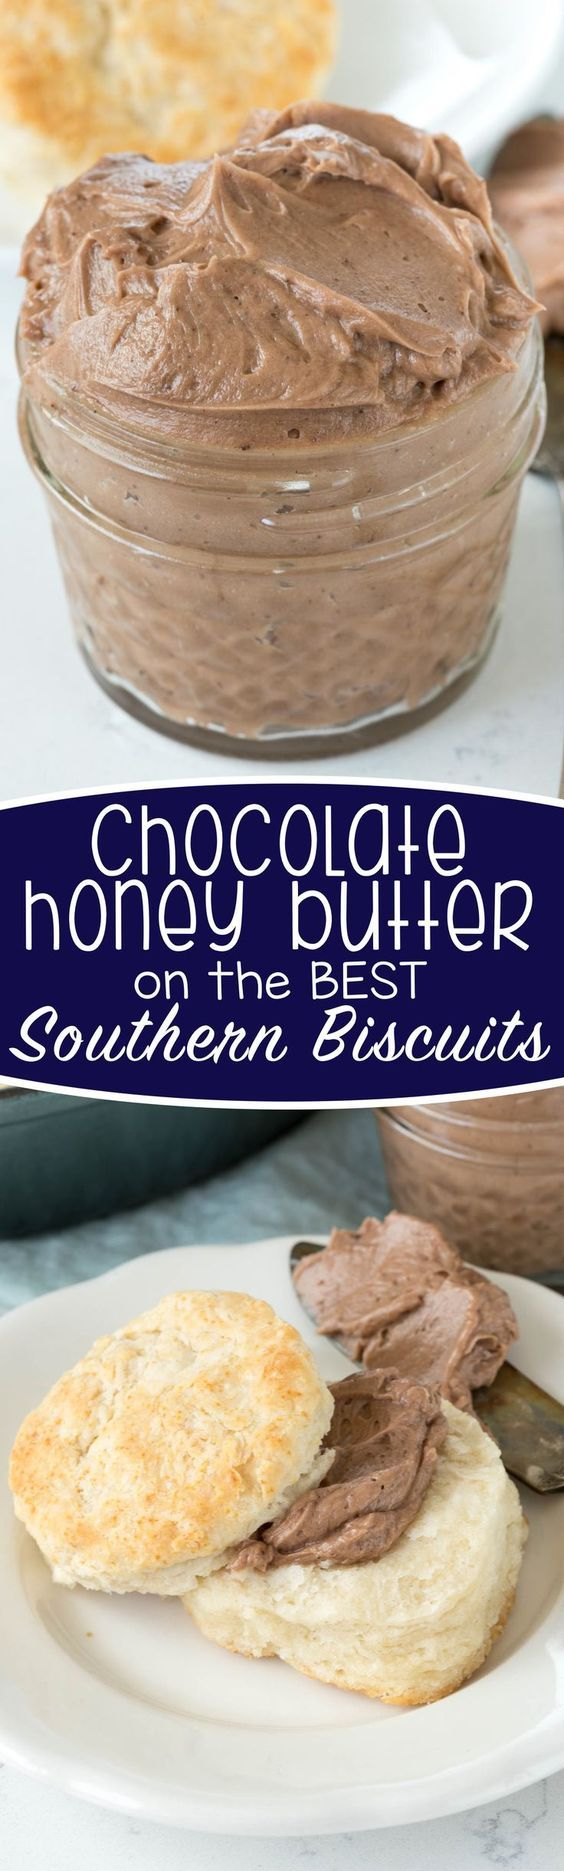 Chocolate Honey Butter - this recipe is so easy and indulgent! Whip butter with…